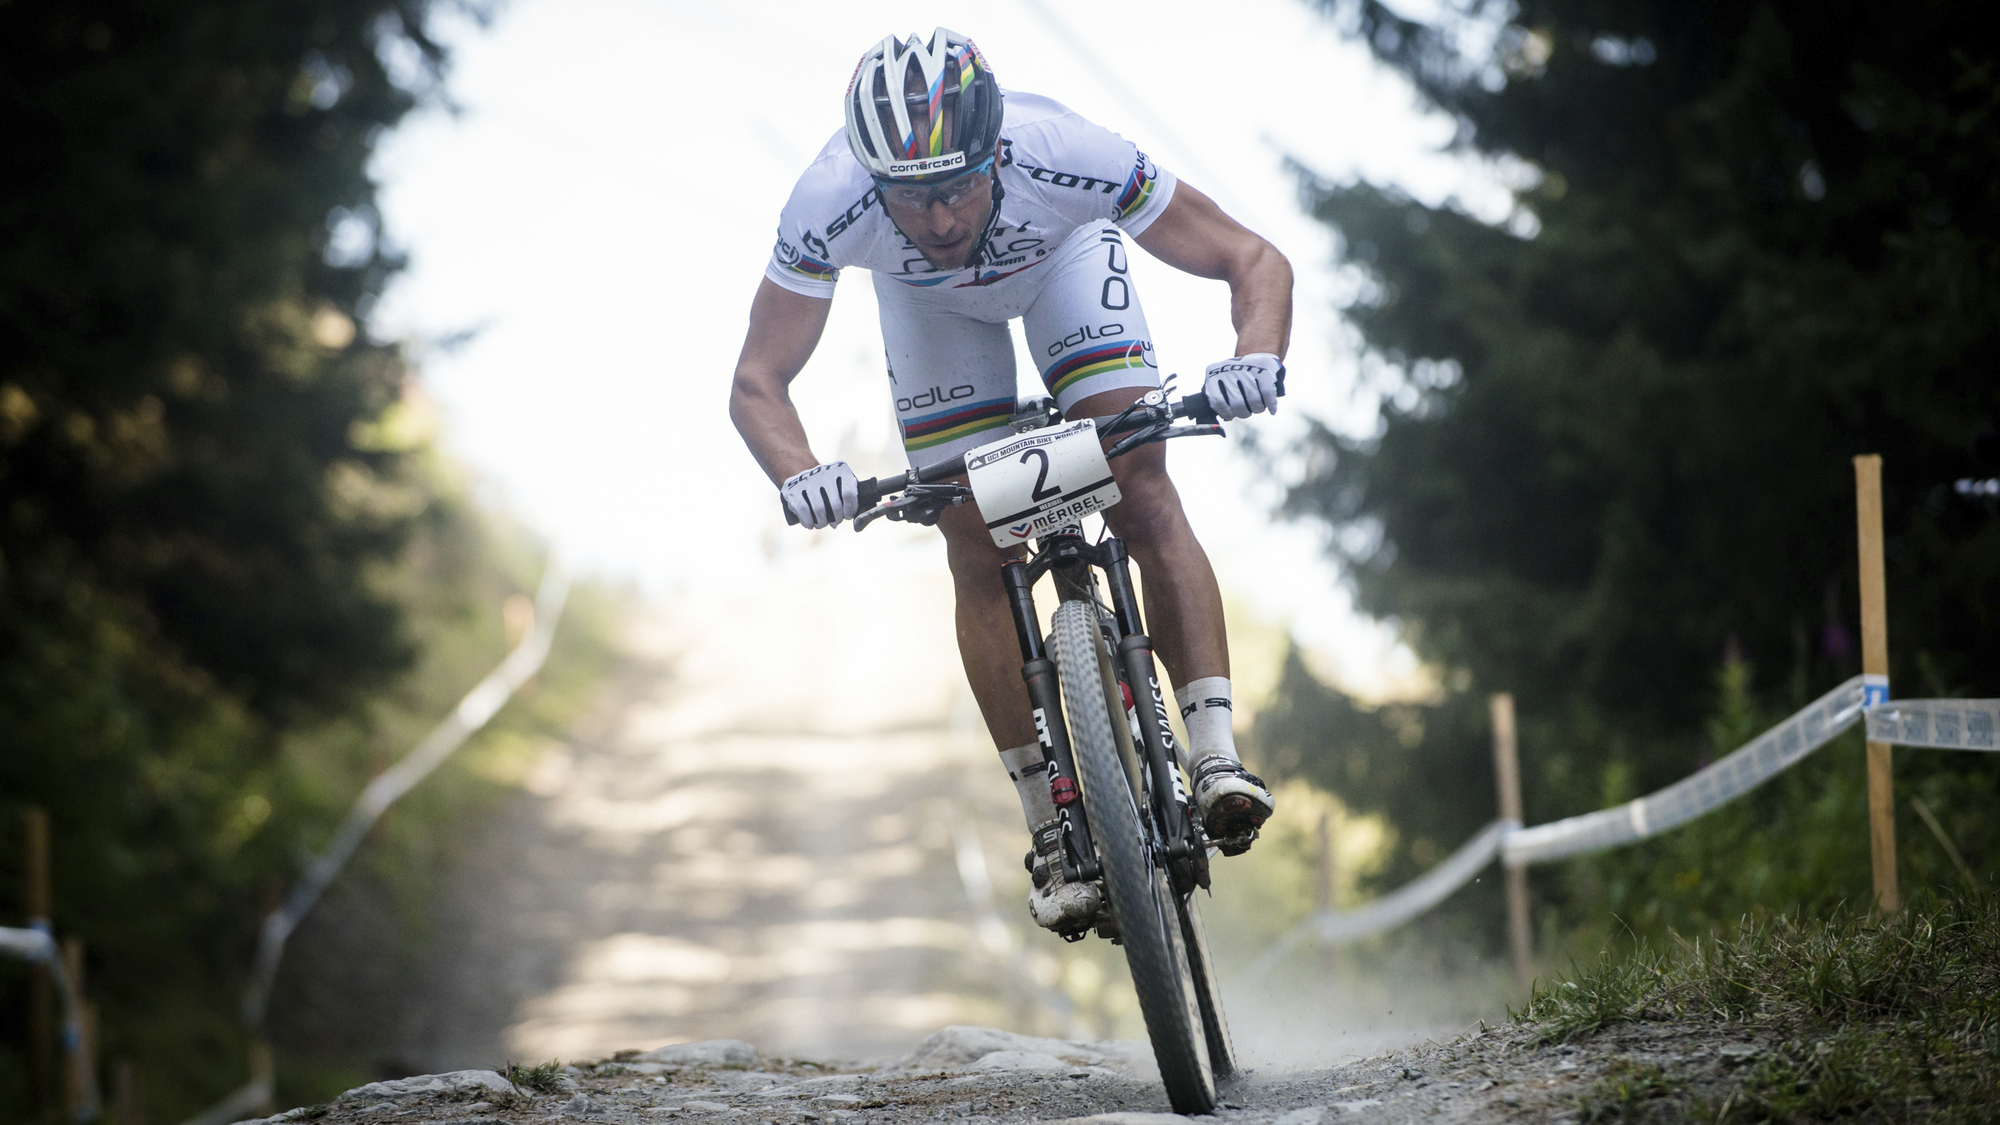 SCOTT-Odlo_Meribel_News_1200x675_2014_BIKE_SCOTT Sports_33.